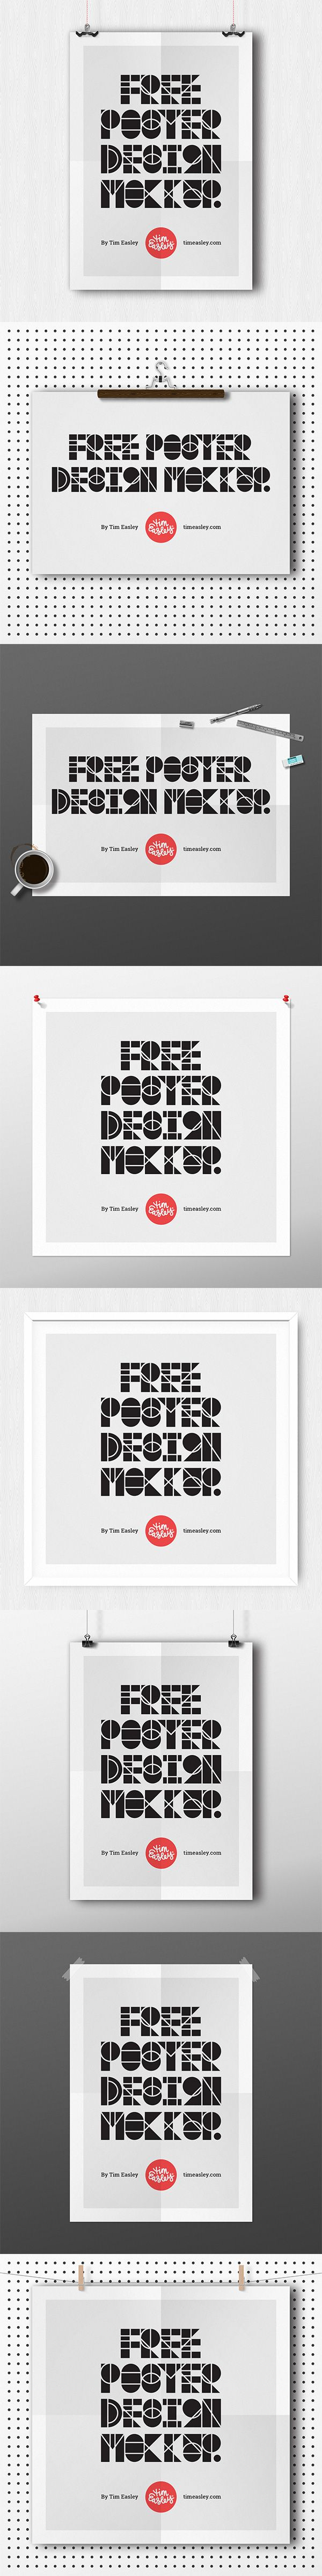 Free Poster Design Mockups in PSD format. Fully customizable.